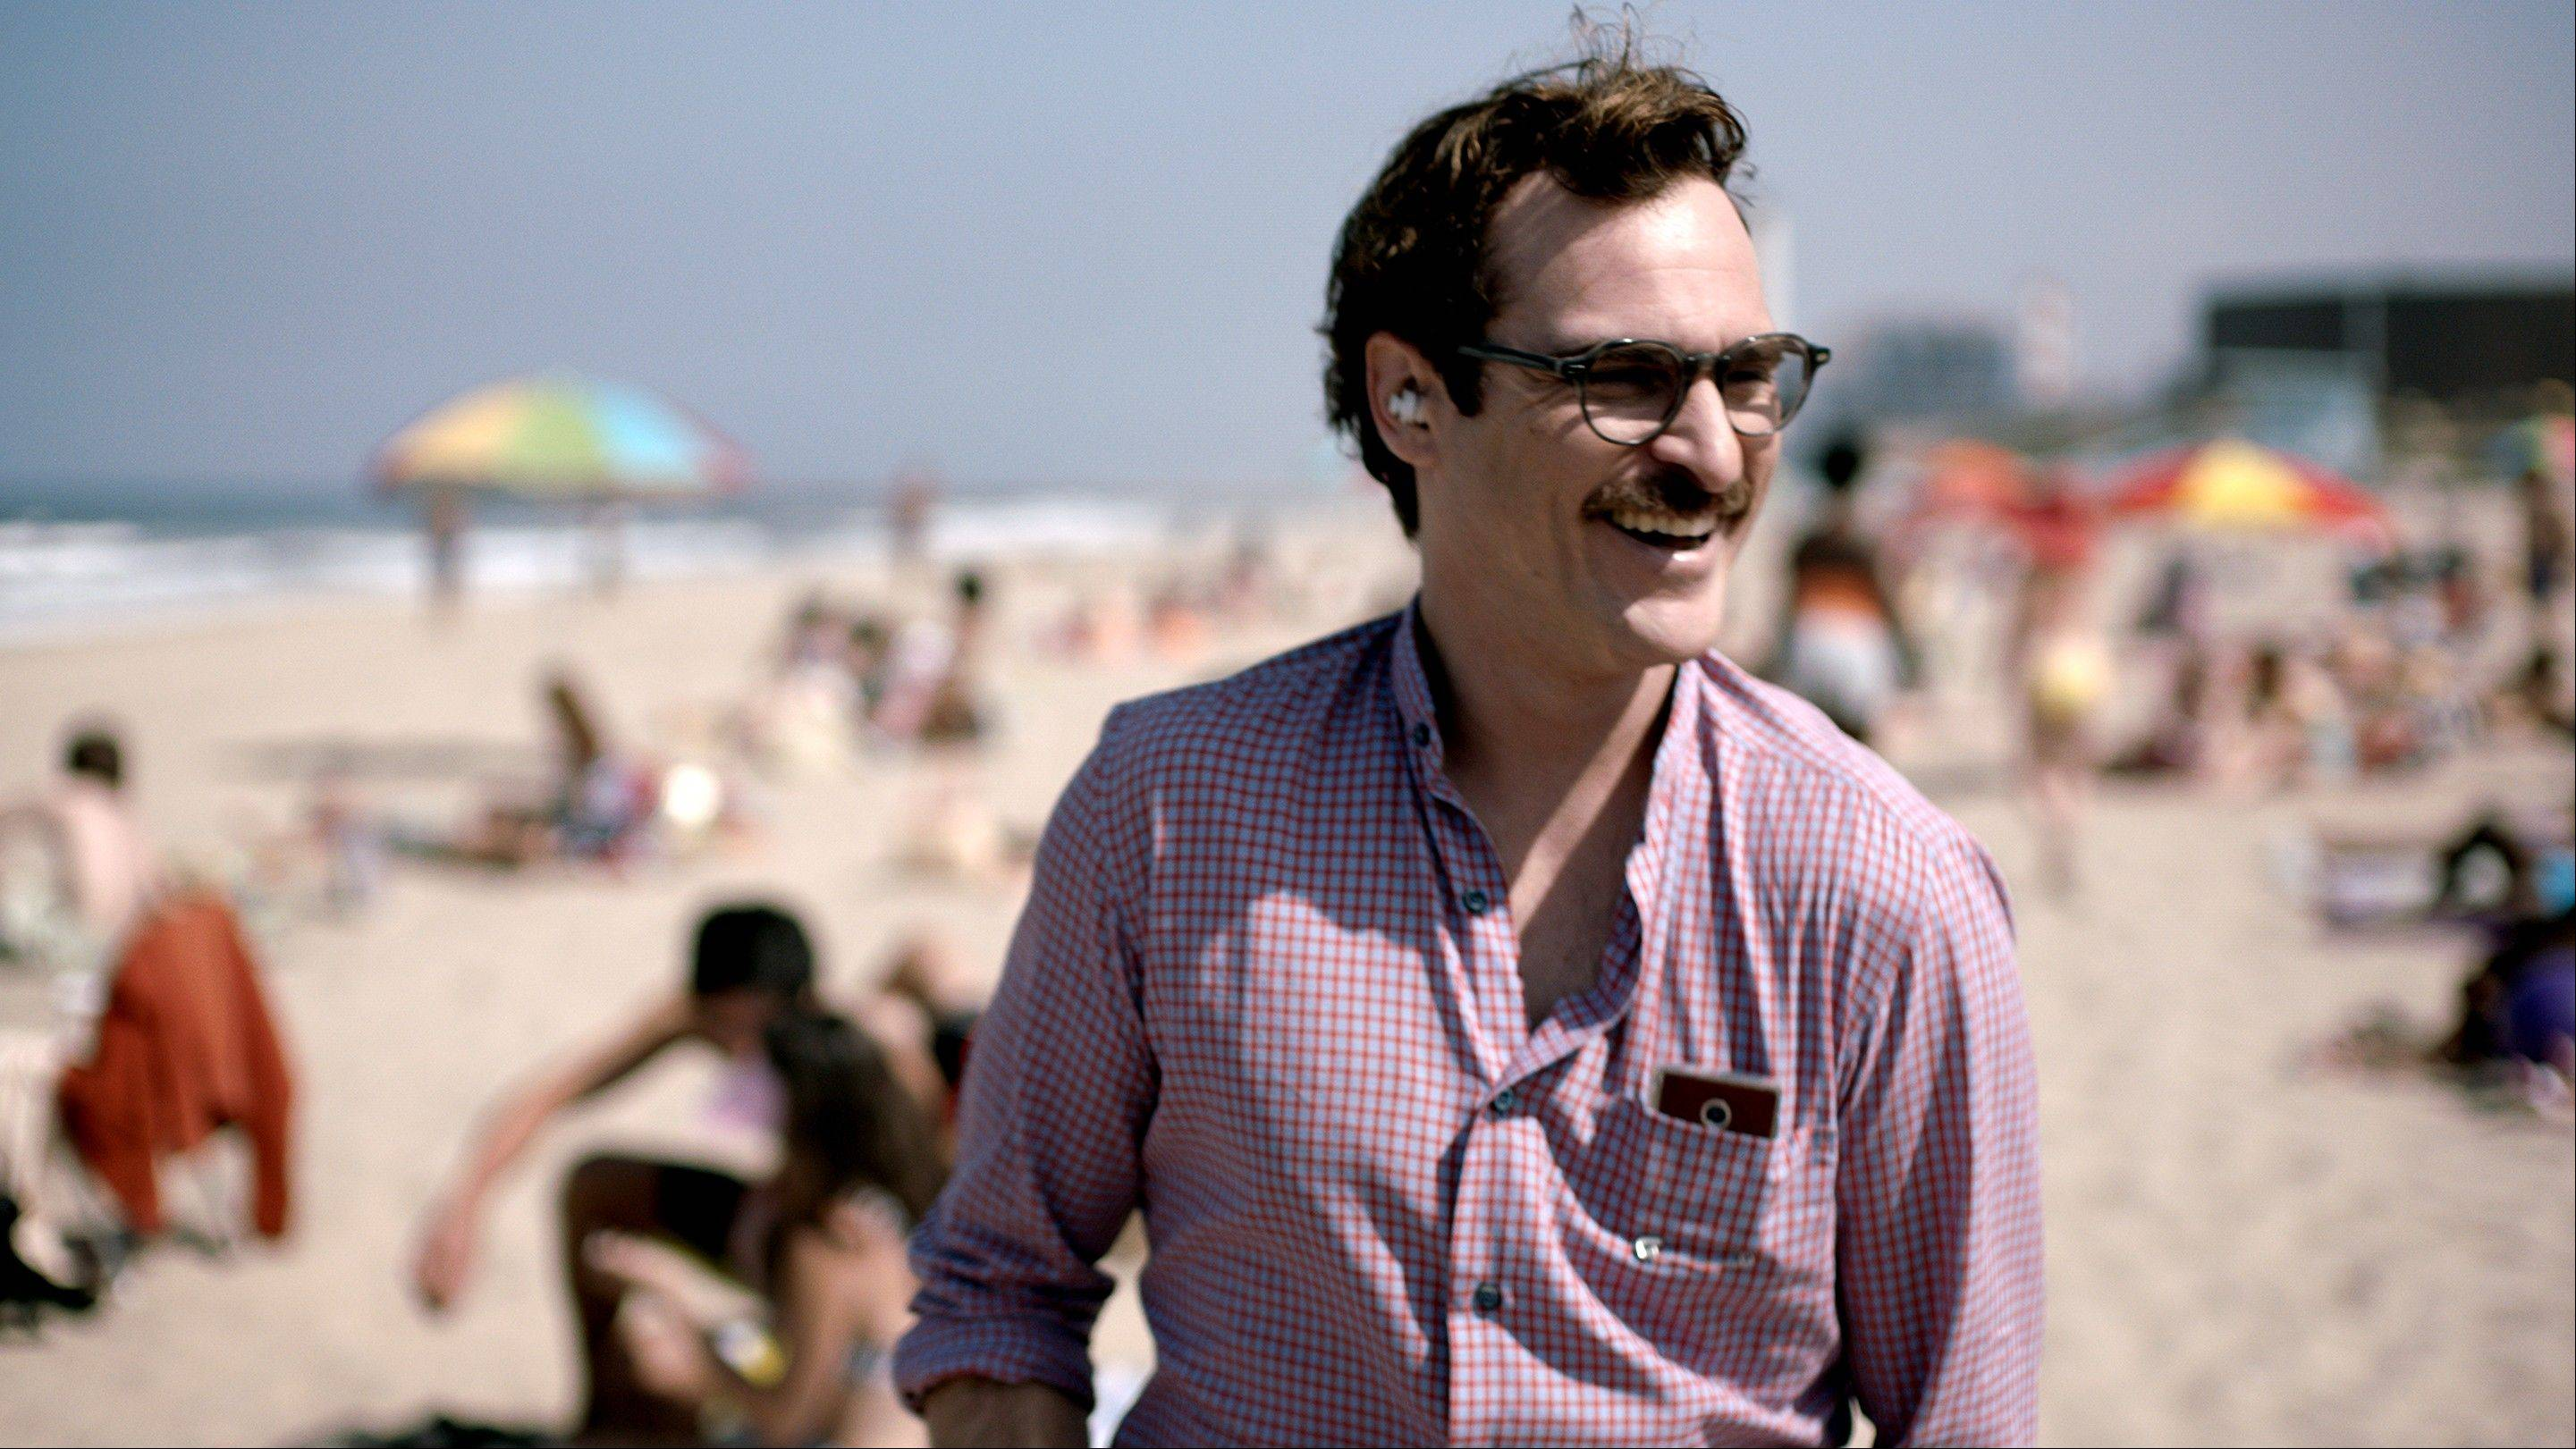 "This undated file image released by Warner Bros. Pictures shows Joaquin Phoenix in a scene from ""Her."" The space odyssey ""Gravity"" and the futuristic romance ""Her"" have tied for best picture from the Los Angeles Film Critics Association. The LA critics announced their picks Sunday, with voting culminating in a tie for the groupís top honor. Spike Jonze's ""Her"" also won best production design for K.K. Barrettís sleek, near-future designs."